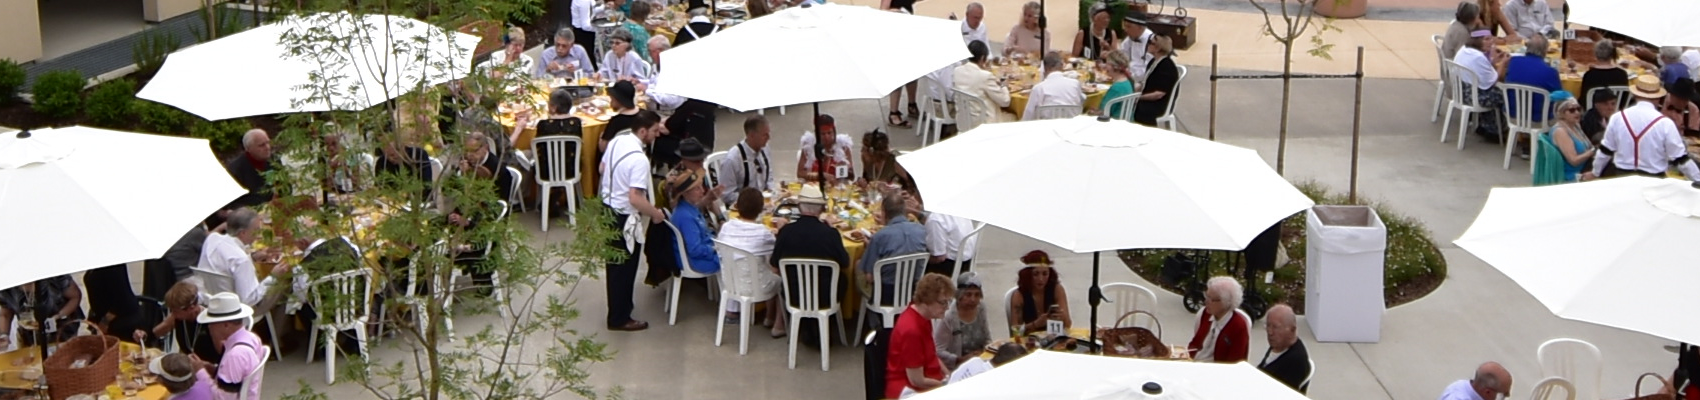 Group of people dining outdoors